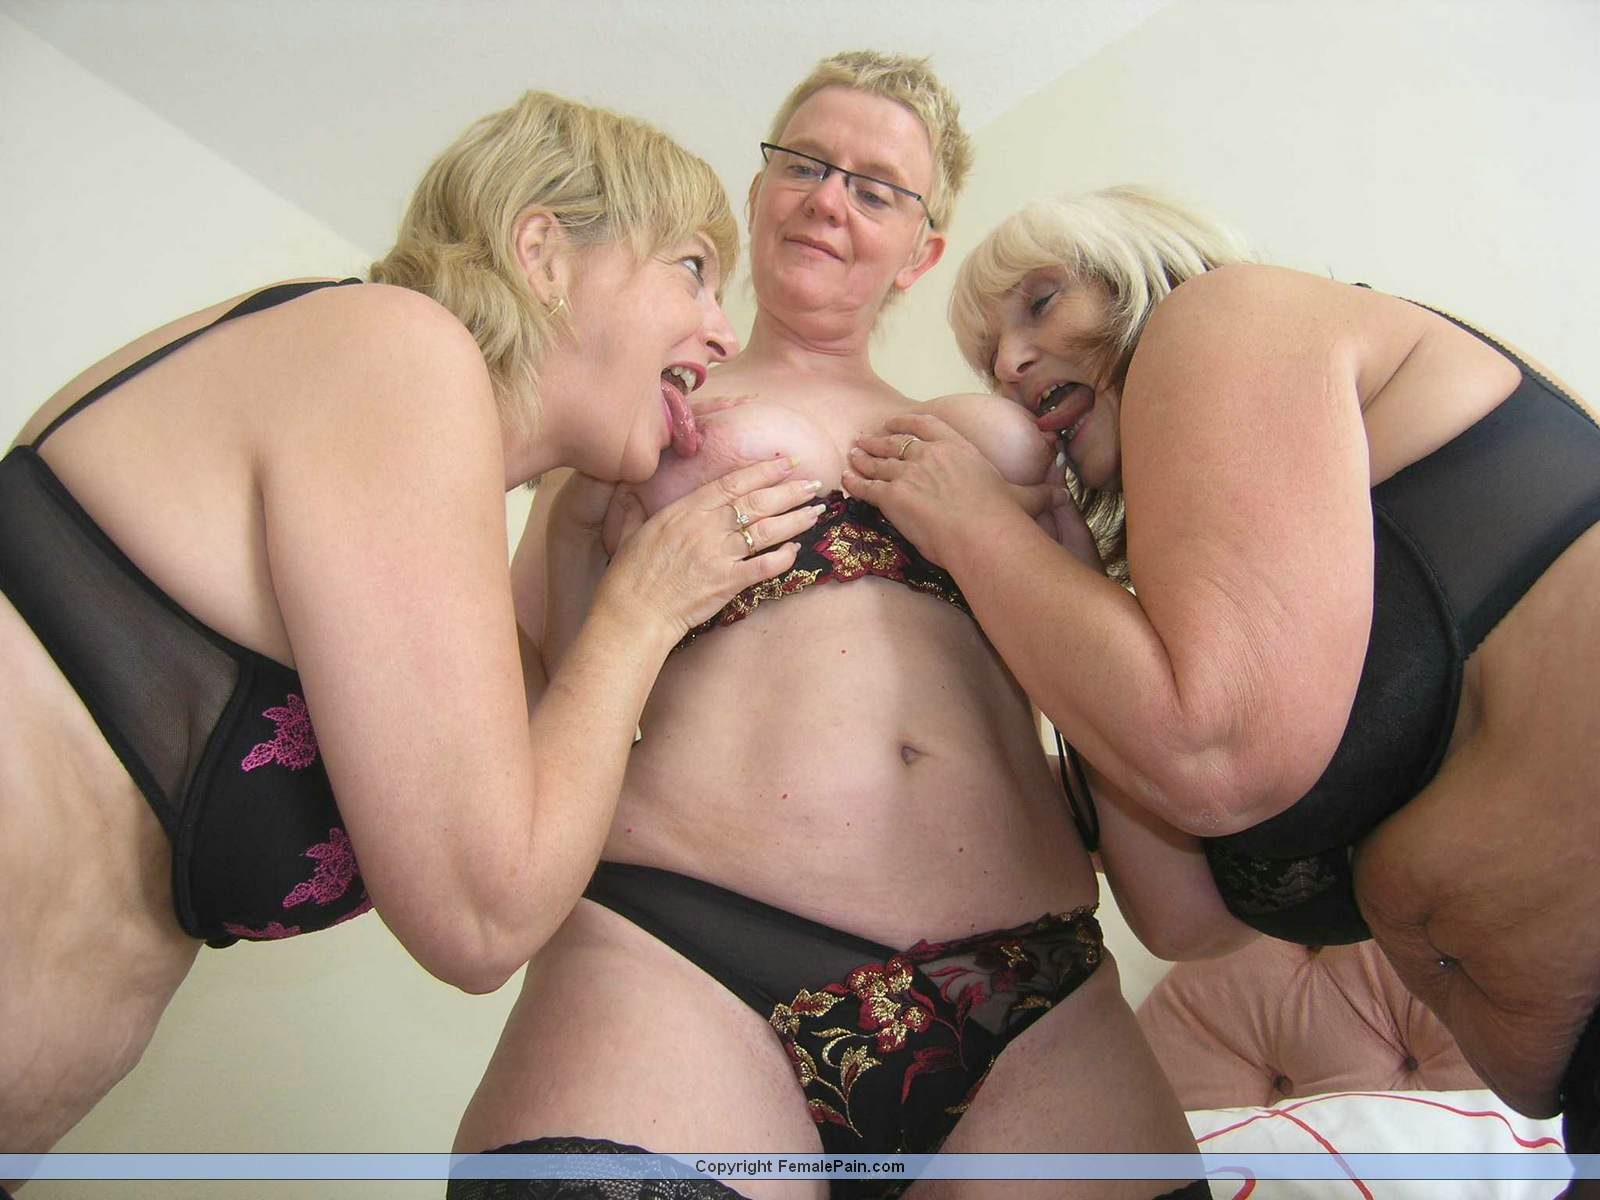 Tied Up Lesbian Threesome